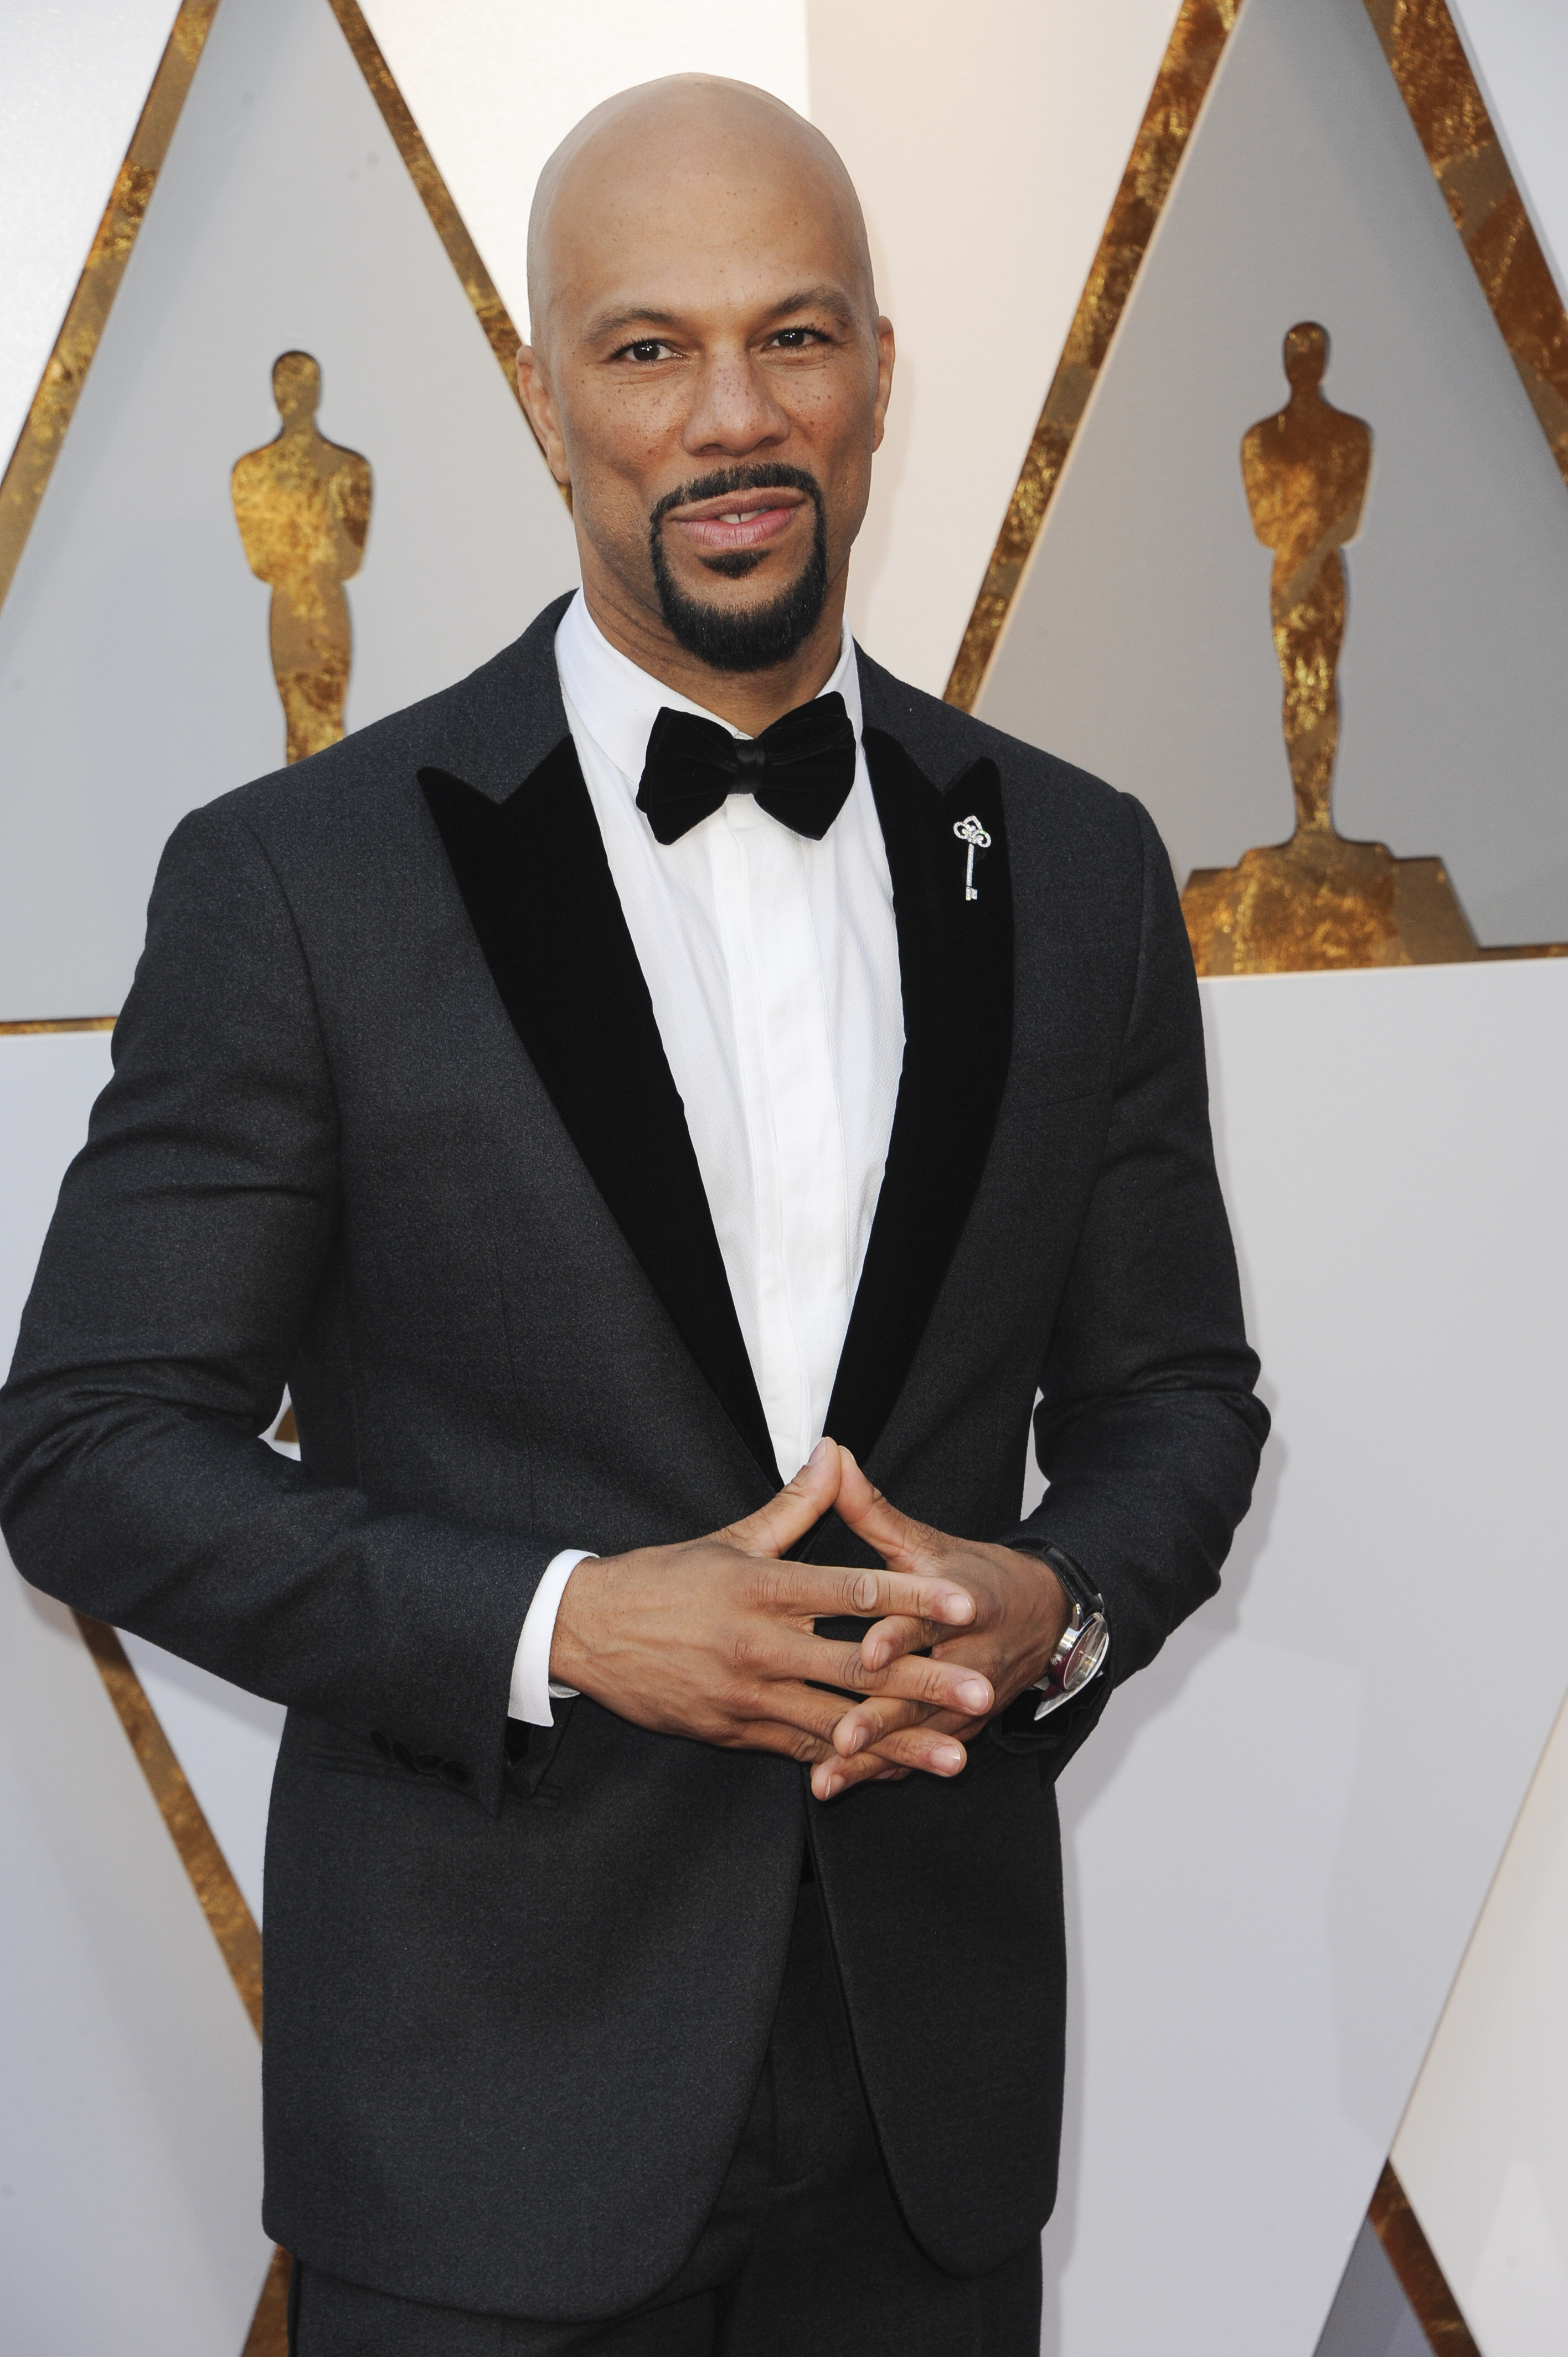 I had tears in my eyes as Common performed &quot;Stand Up For Something&quot; alongside Andra Day (and local boy Jose Andres made an appearance!) and the rapper didn't look too bad doing it in Armani with a Tiffany &amp;amp; Co. watch and pin. (Image: Apega/WENN.com)<p></p>